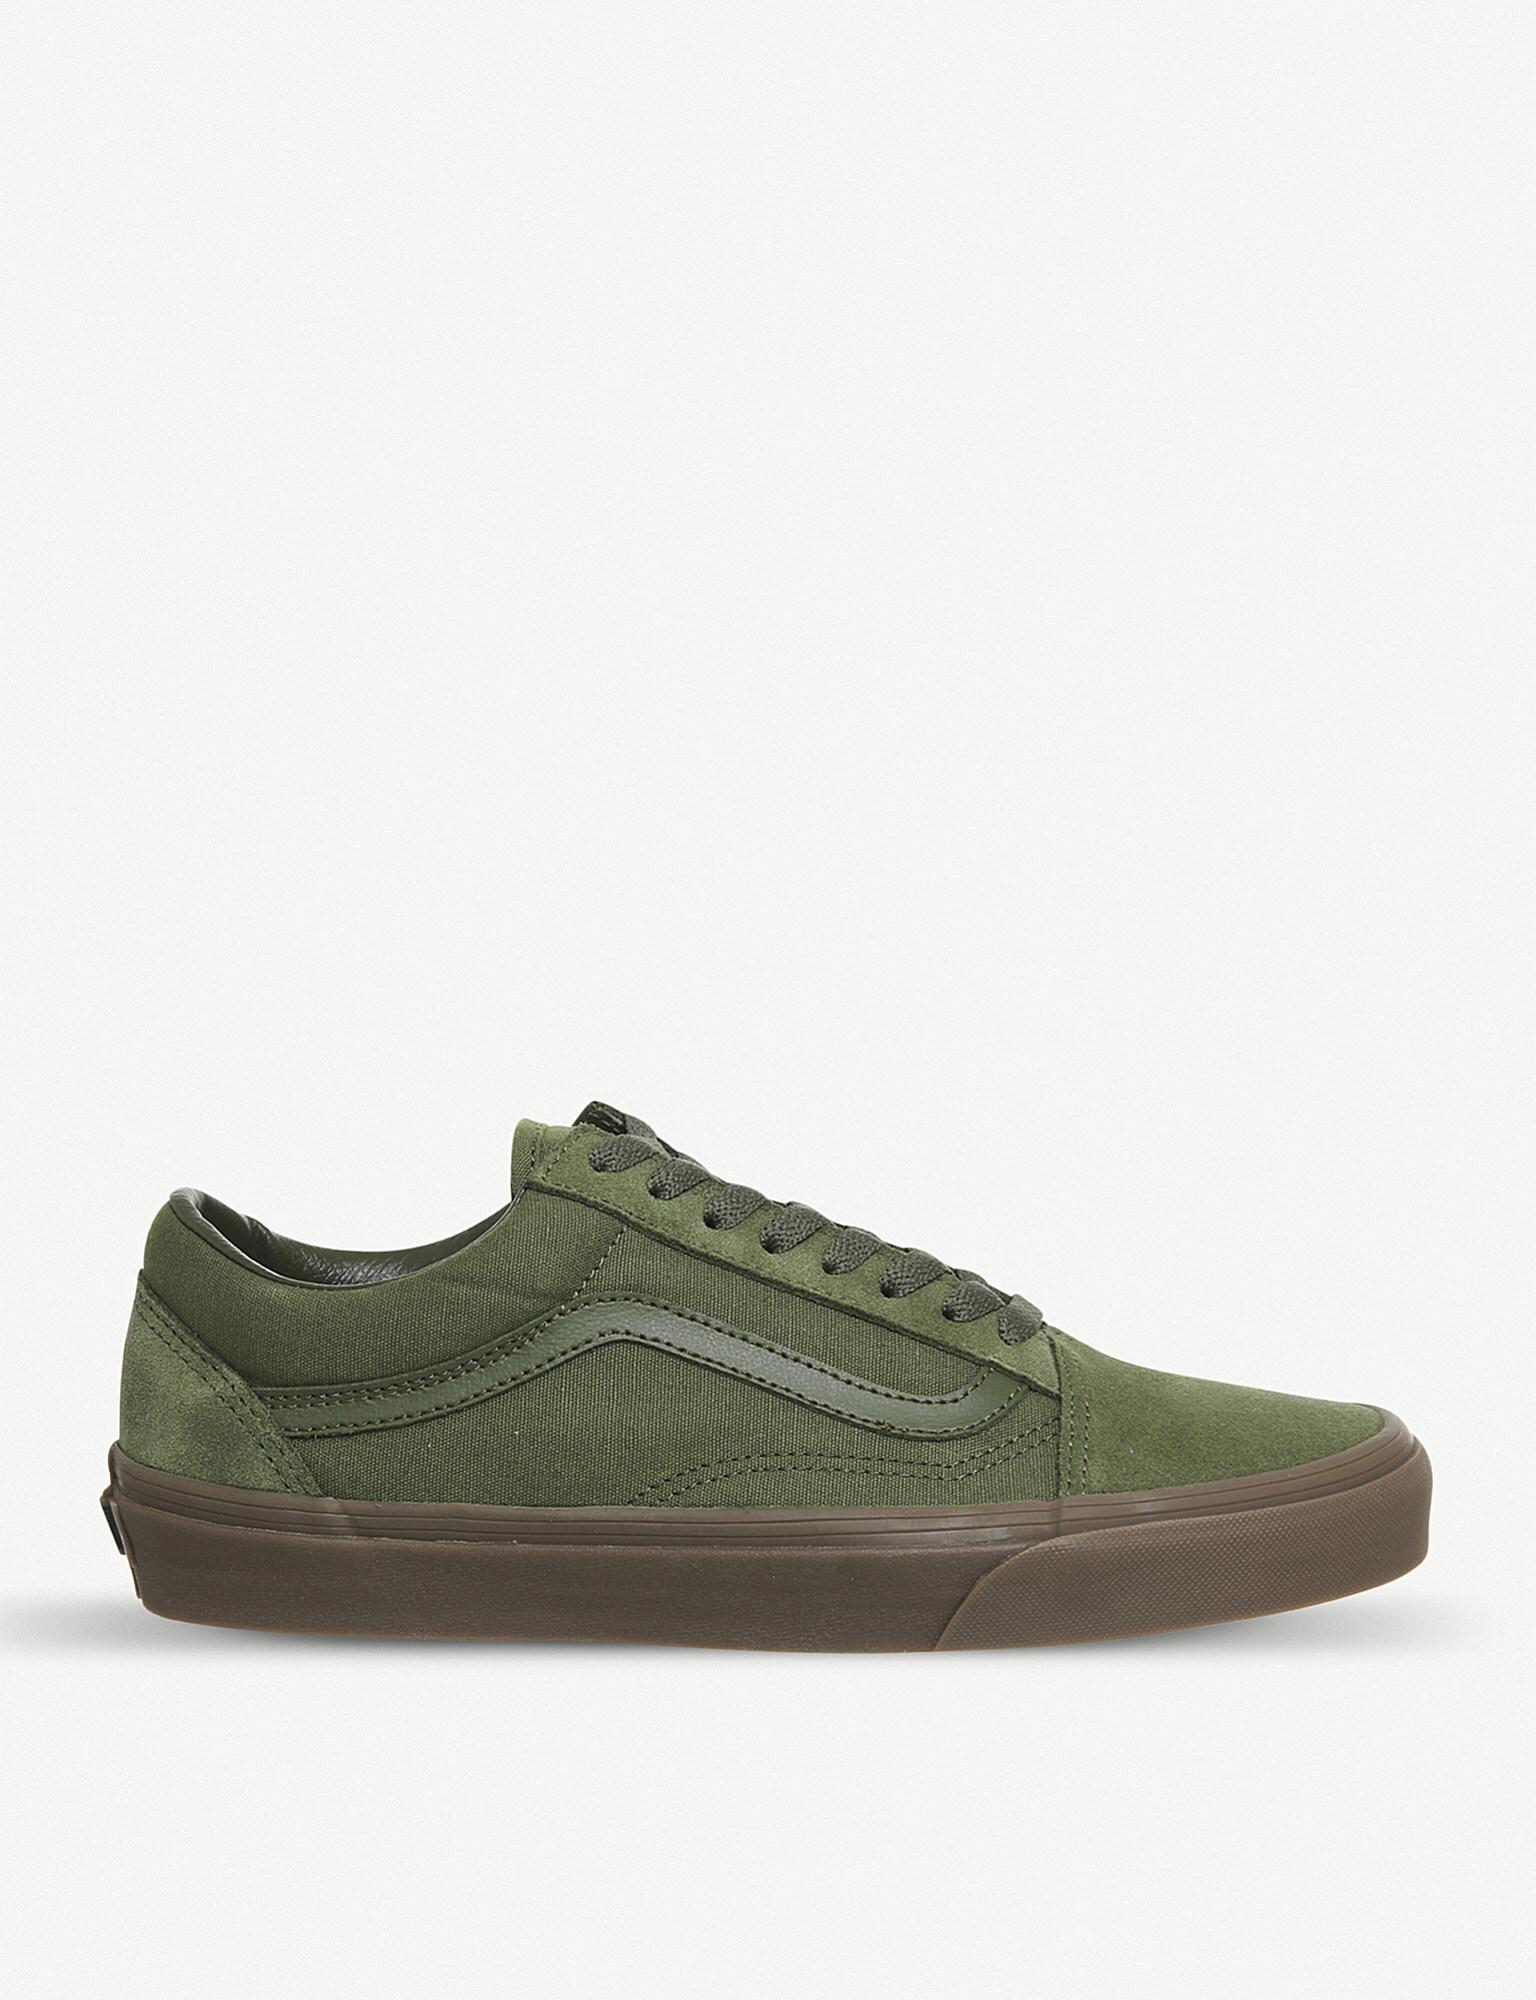 46d64578557 Lyst - Vans Old Skool Canvas And Suede Trainers in Green for Men